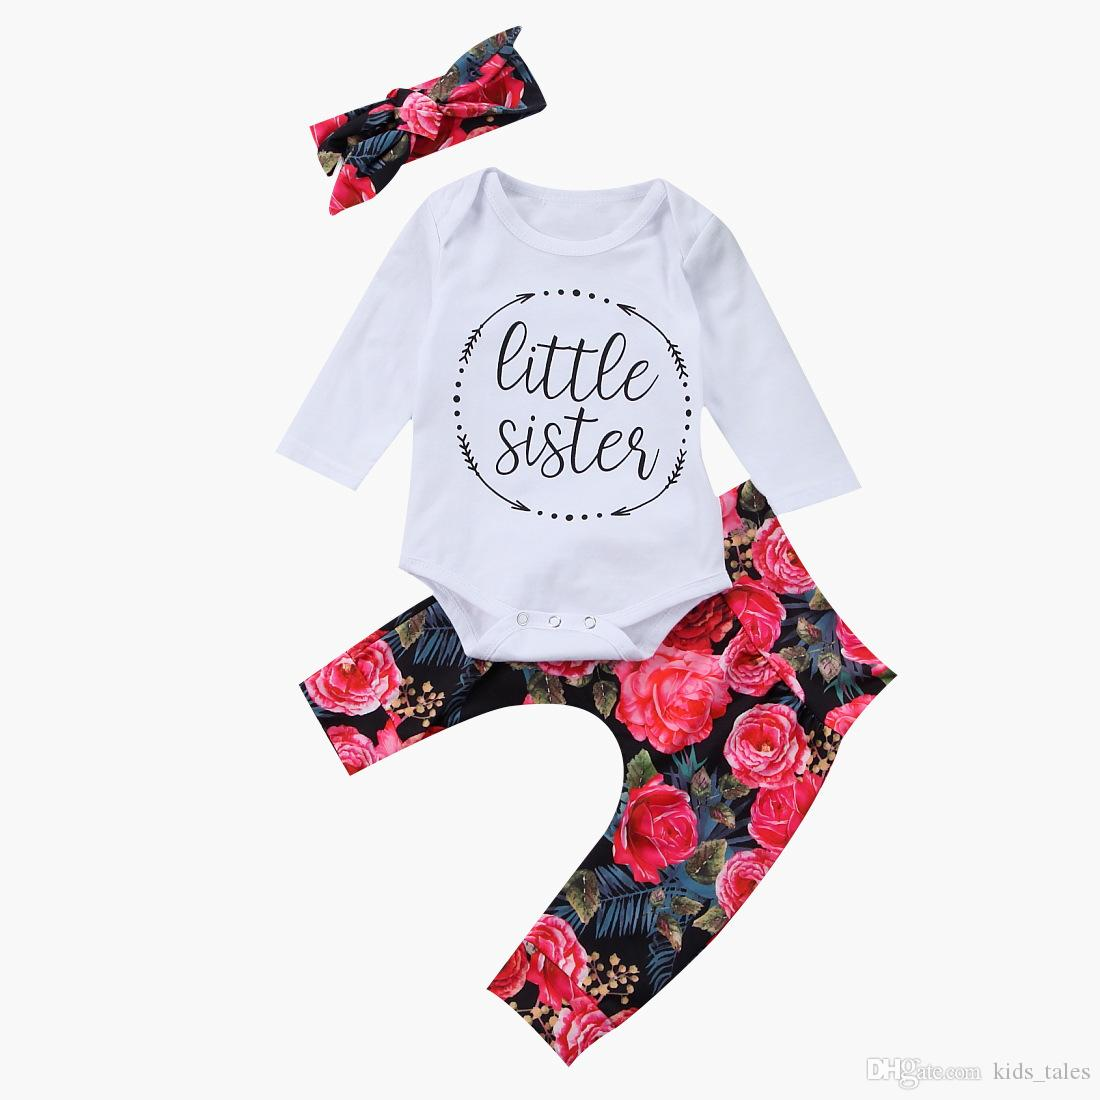 c64ff96f361ac 2017 ins hot sale newborn baby little sister clothes sets infant baby long  sleeve romper long pants hat 3piece outfits